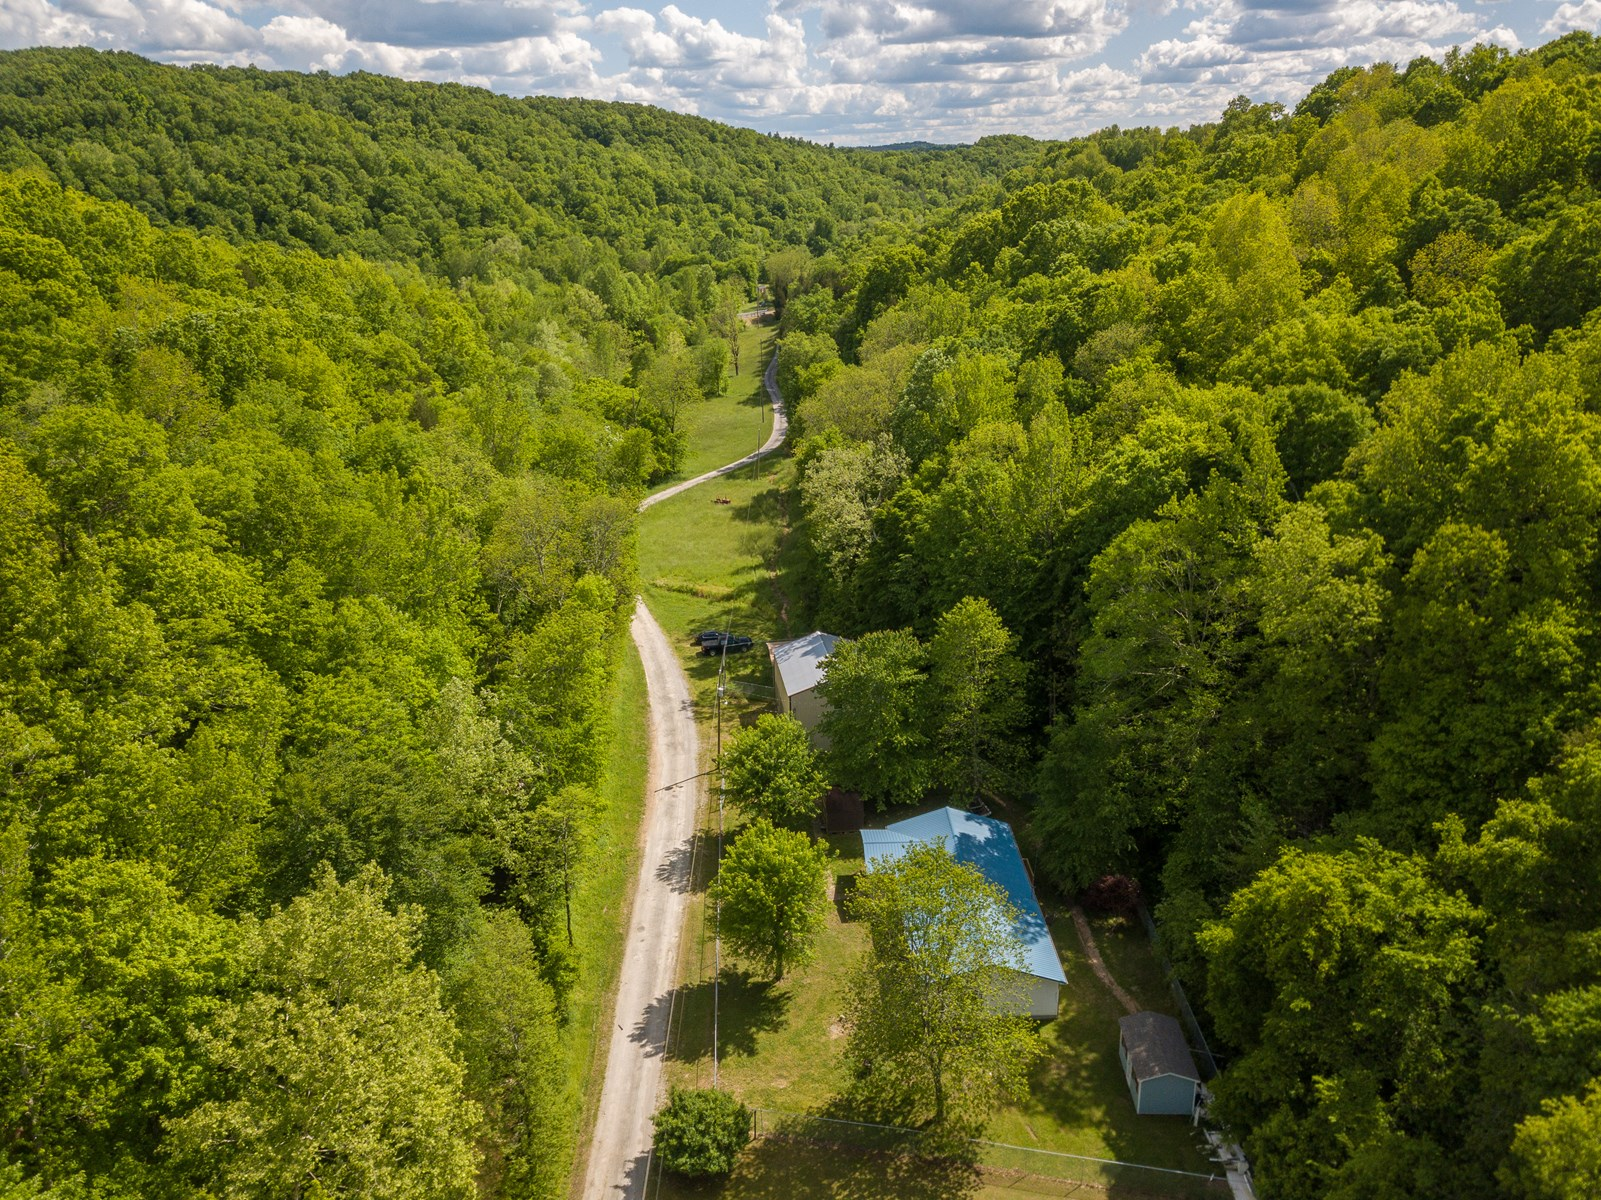 SOLD & CLOSED TN HOME SHOP 101 AC CREEKS SPRINGS CAVE TIMBER